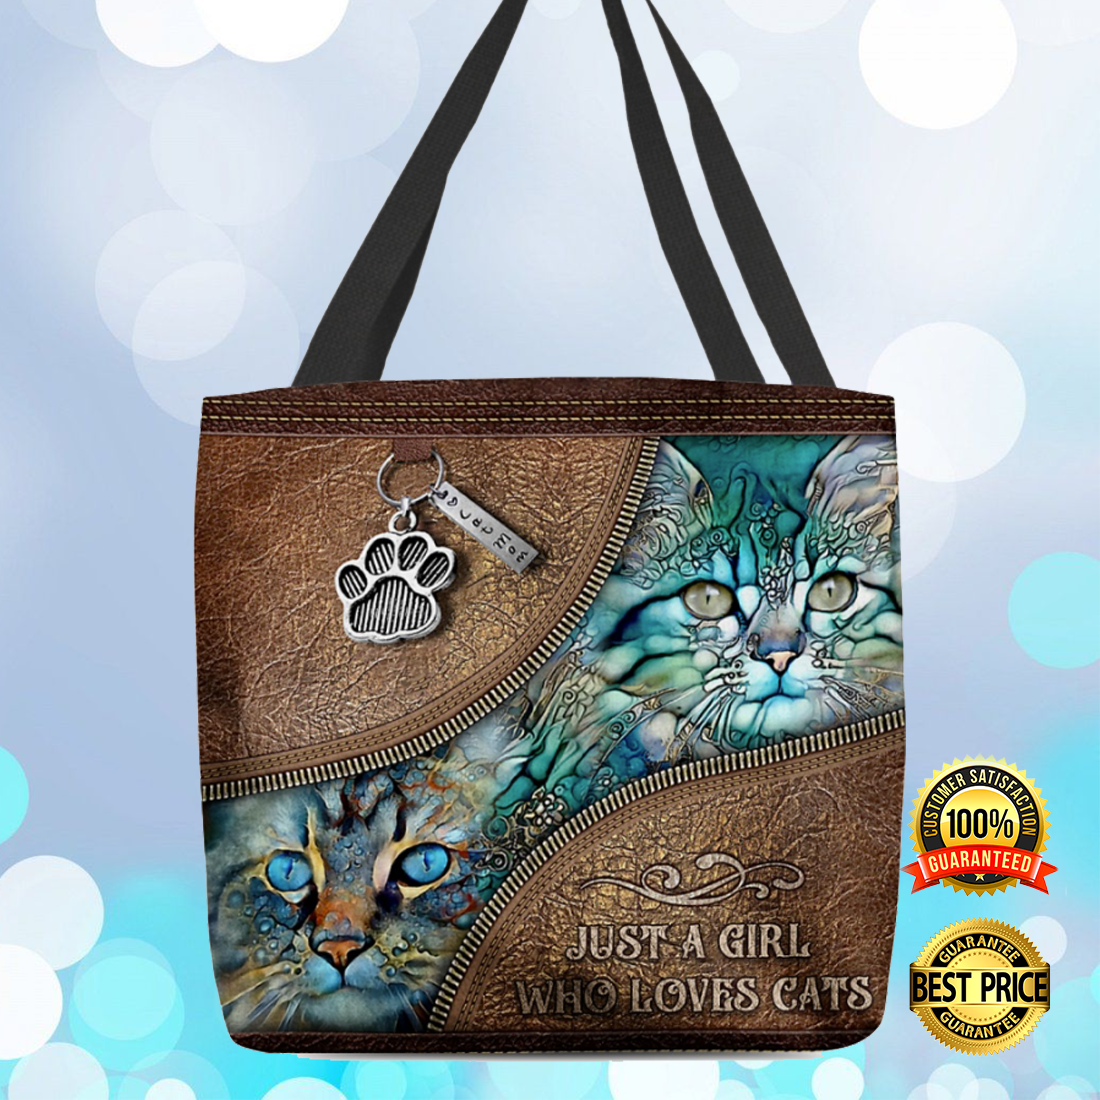 JUST A GIRL WHO LOVES CATS TOTE BAG